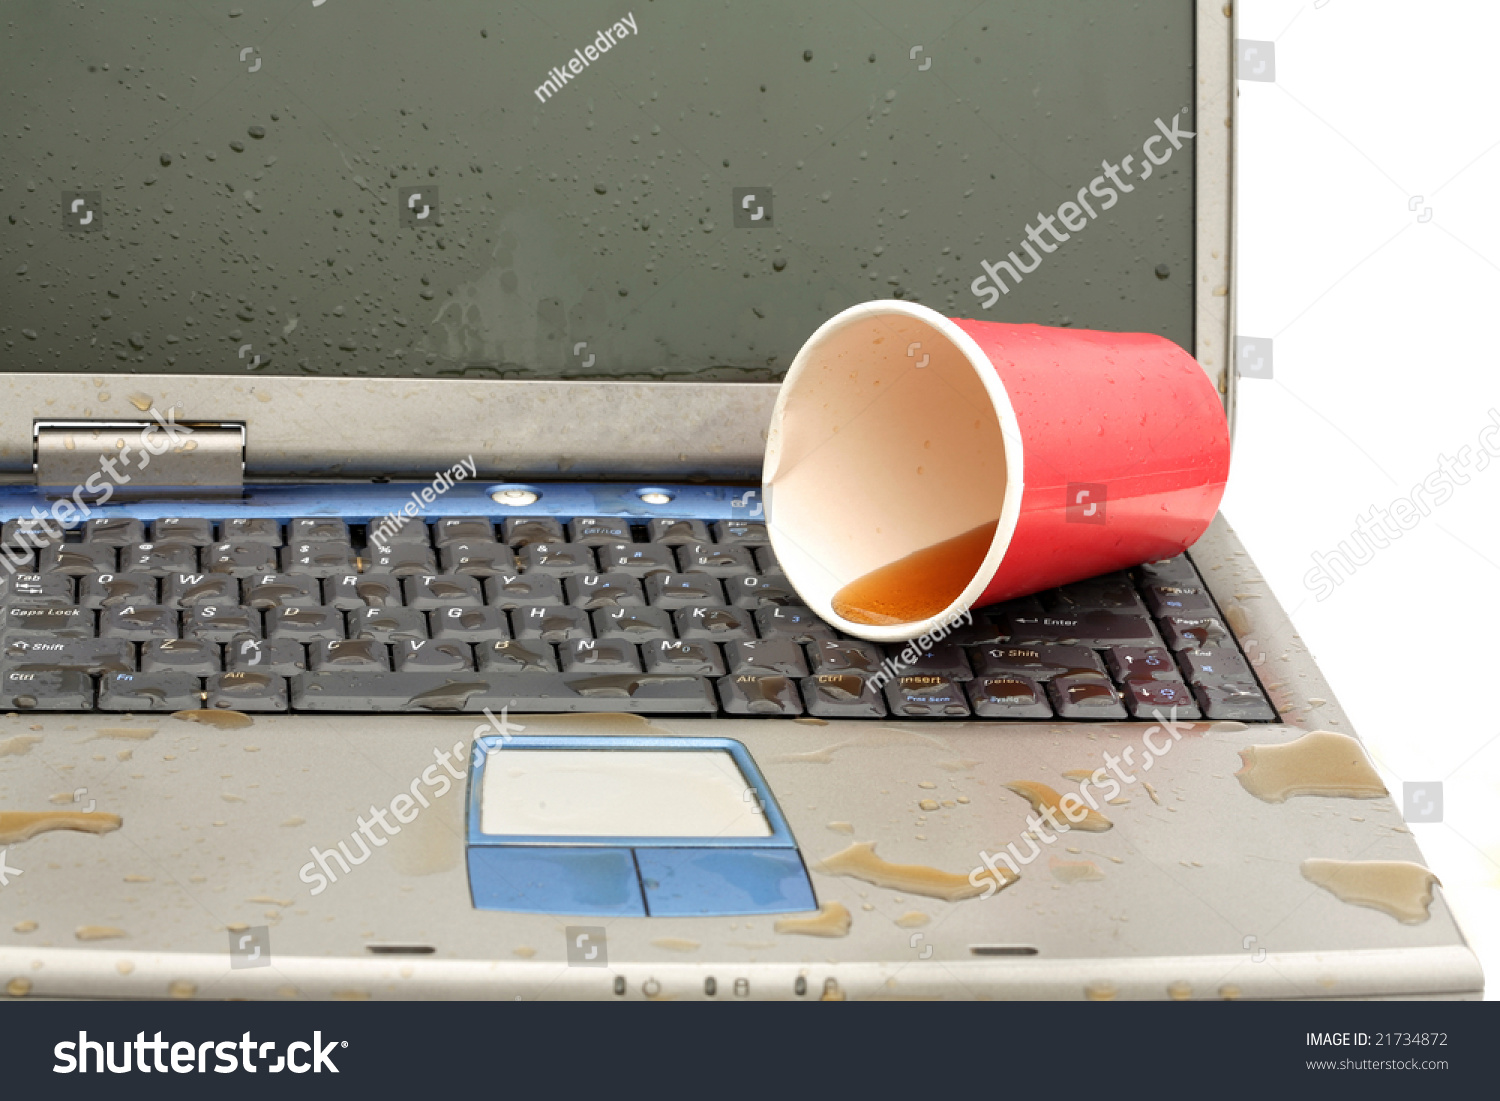 Help!! Please help! Spilled Tea on Laptop and IPhone 4?